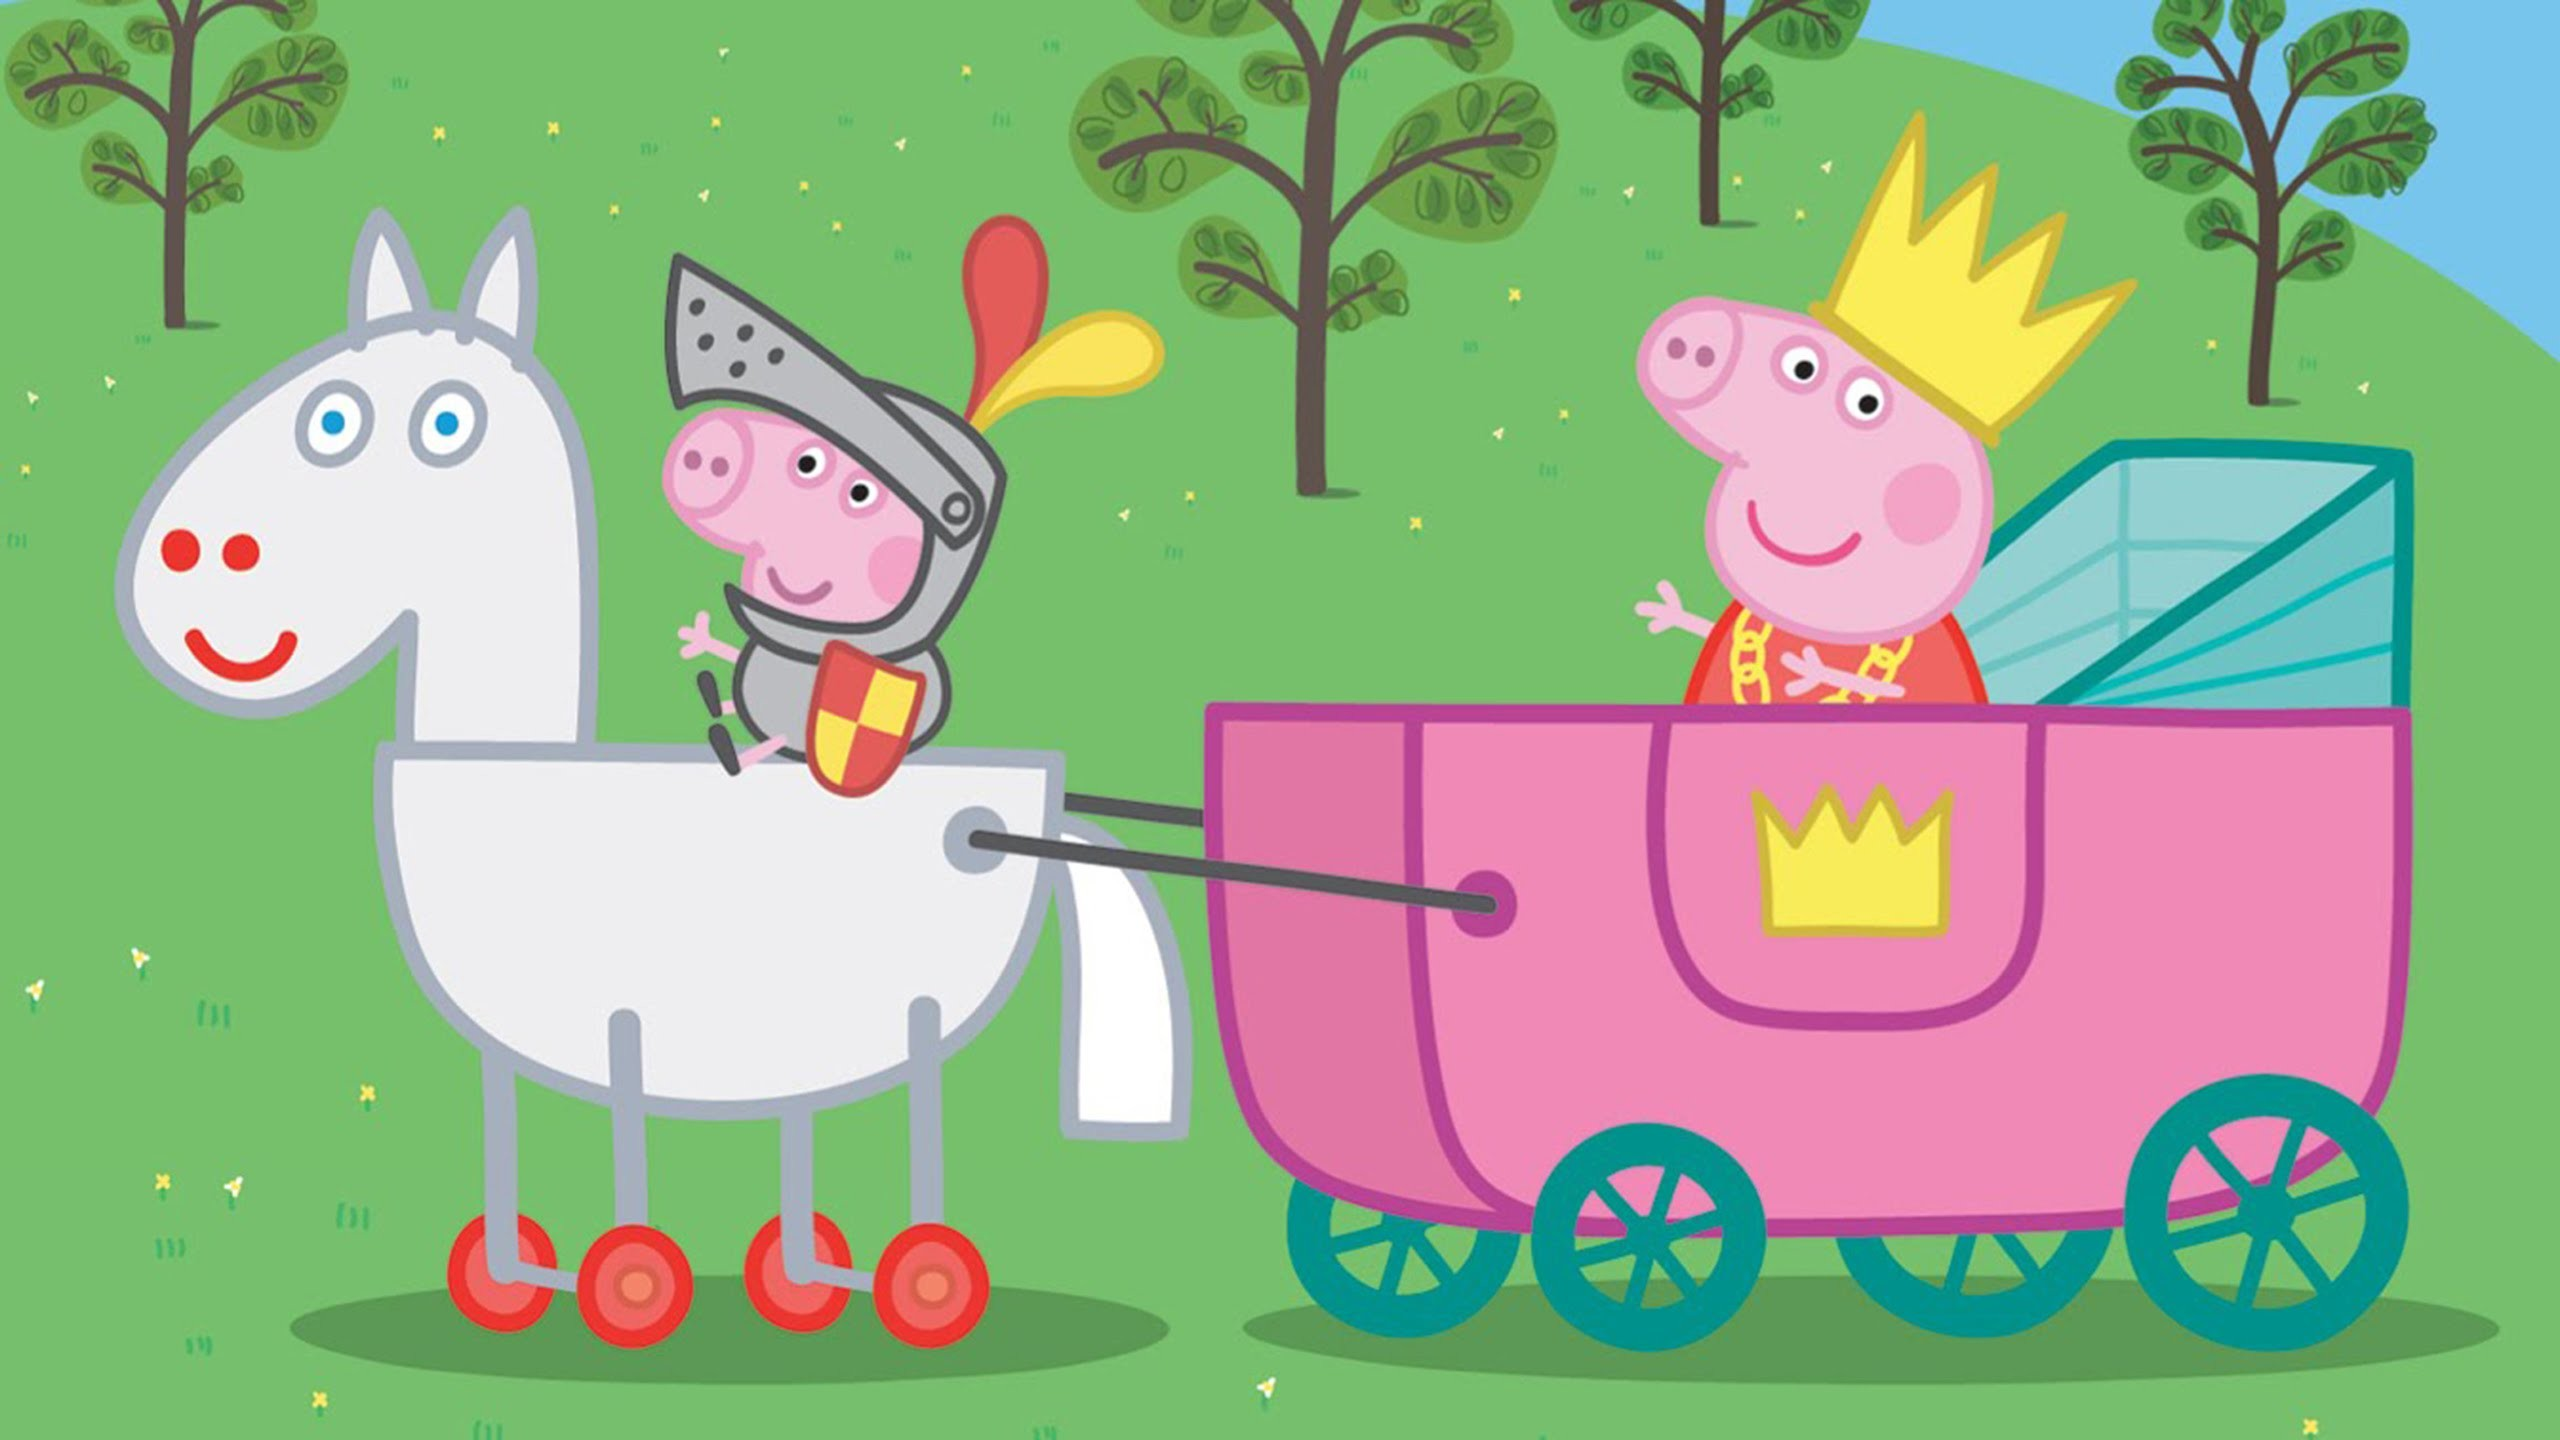 Peppa Pig Coloring Pages For Kids Peppa Pig Coloring Book -Princess Peppa  Pig Royal Carriage – YouTube